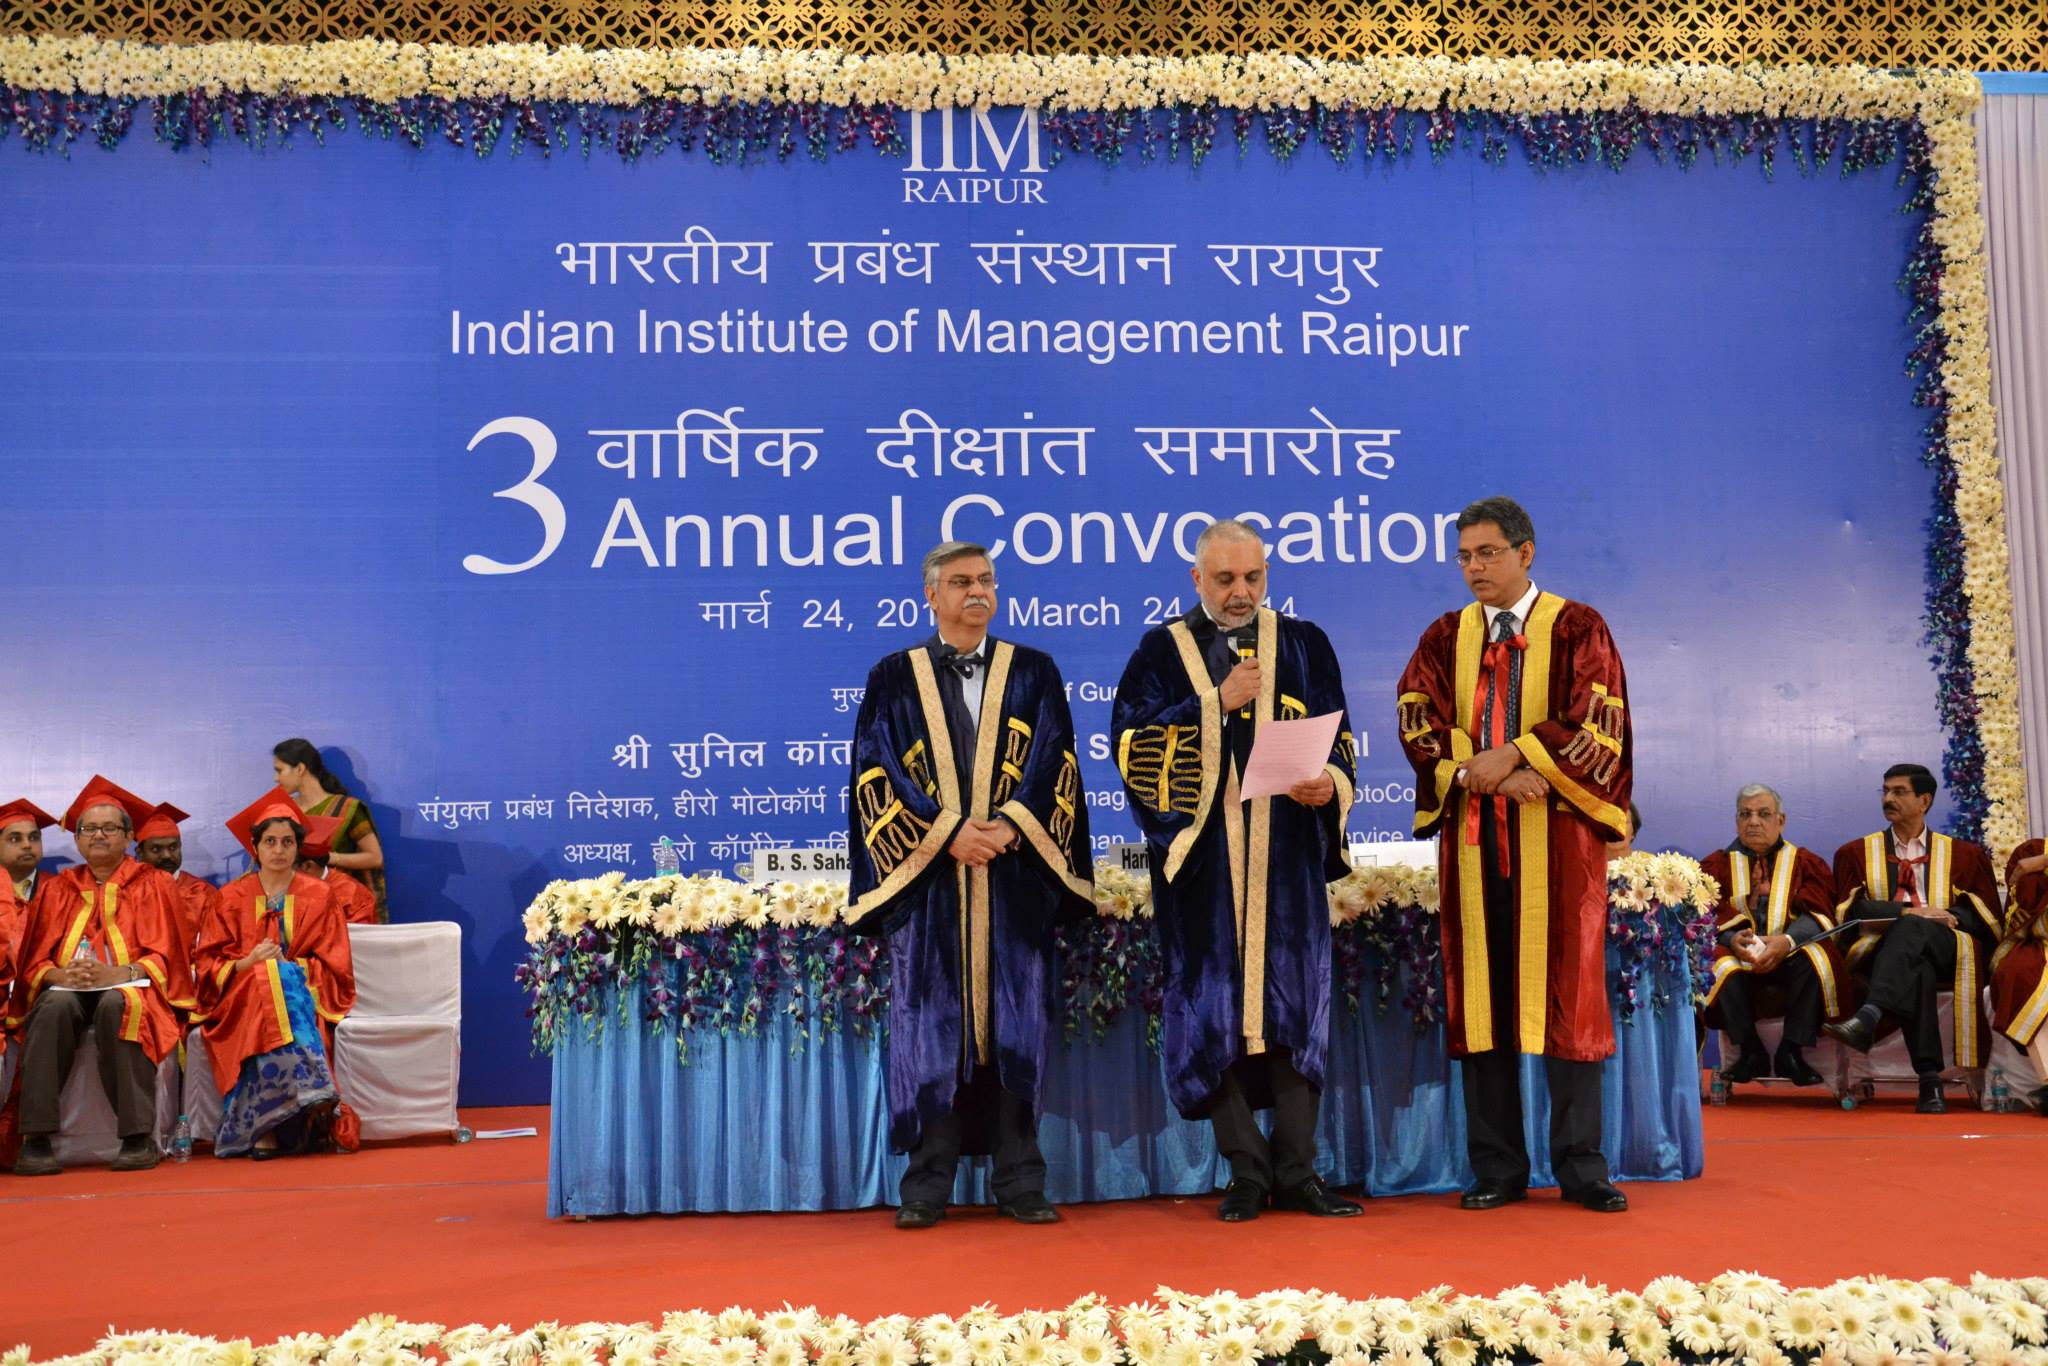 IIM, Raipur celebrates its 3rd Annual Convocation Day